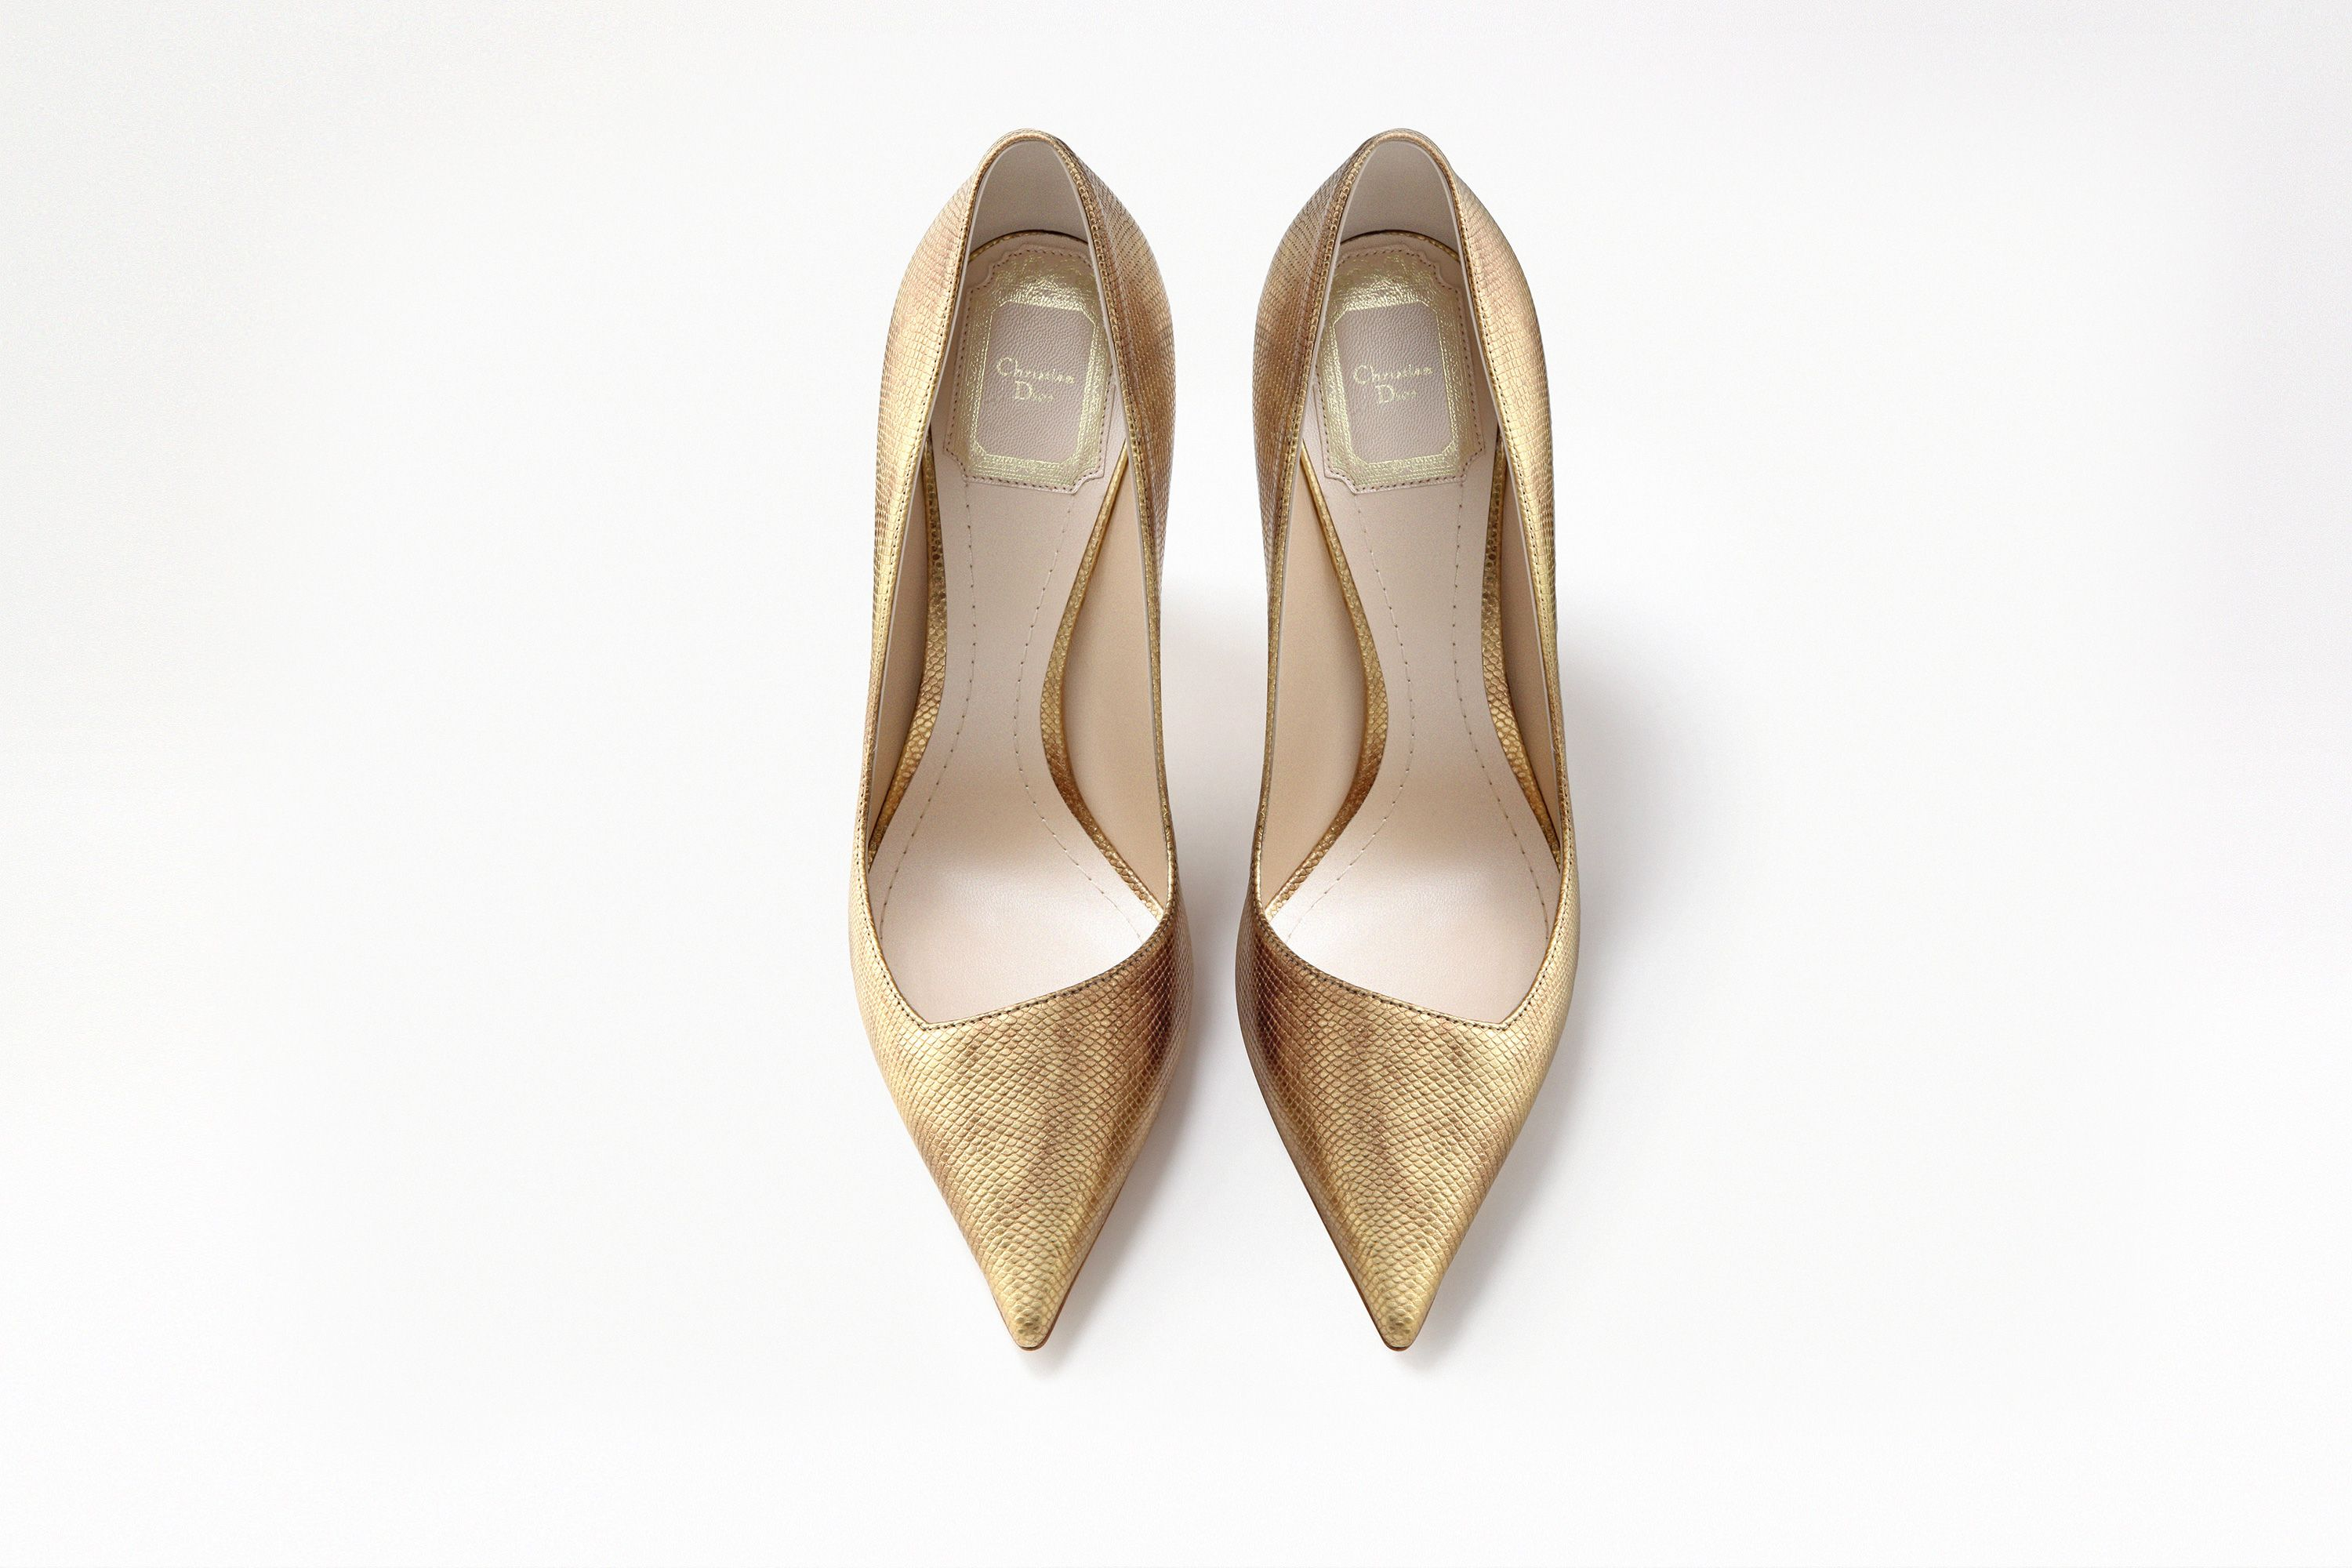 or watersnake pointed-toe pump, 10 cm - Shoes Dior